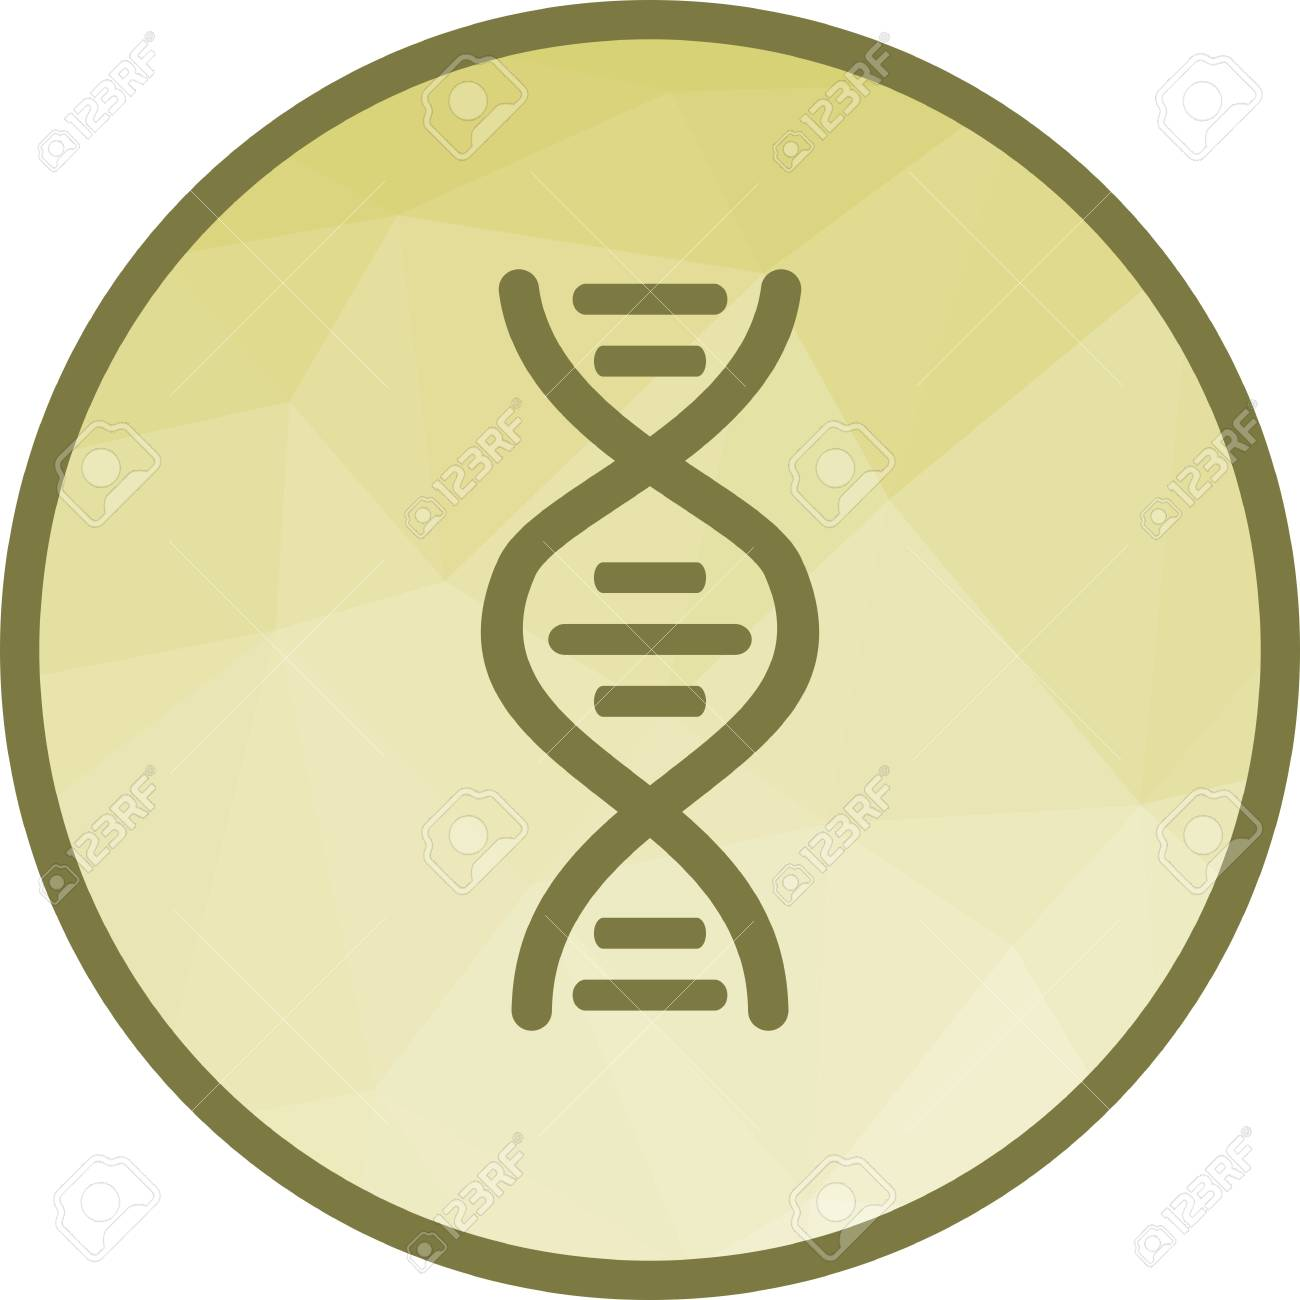 Cell, dna, genes icon vector image  Can also be used for human